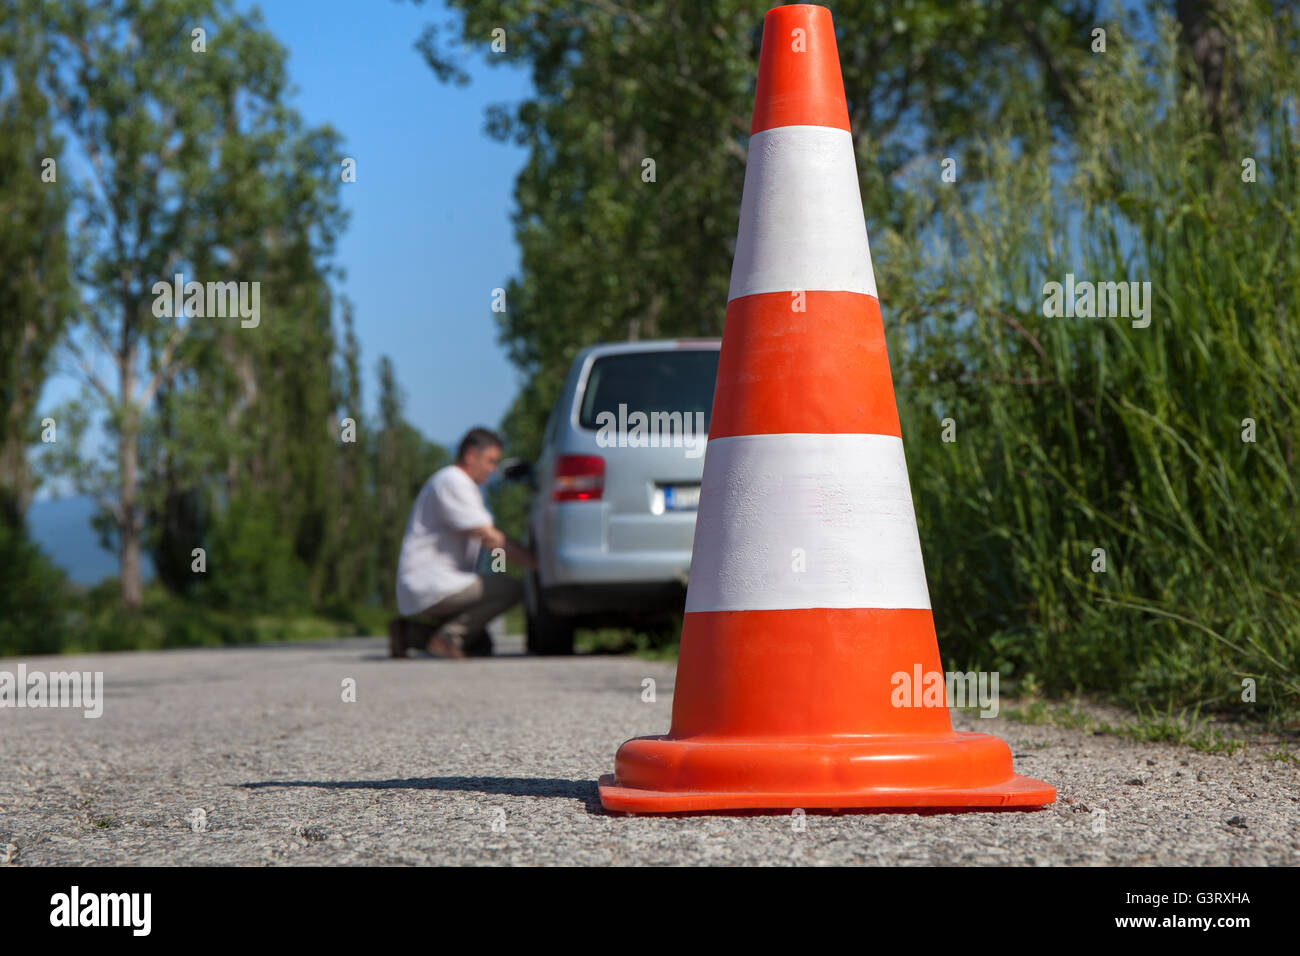 Man and car with a little breakdown on a country road. - Stock Image